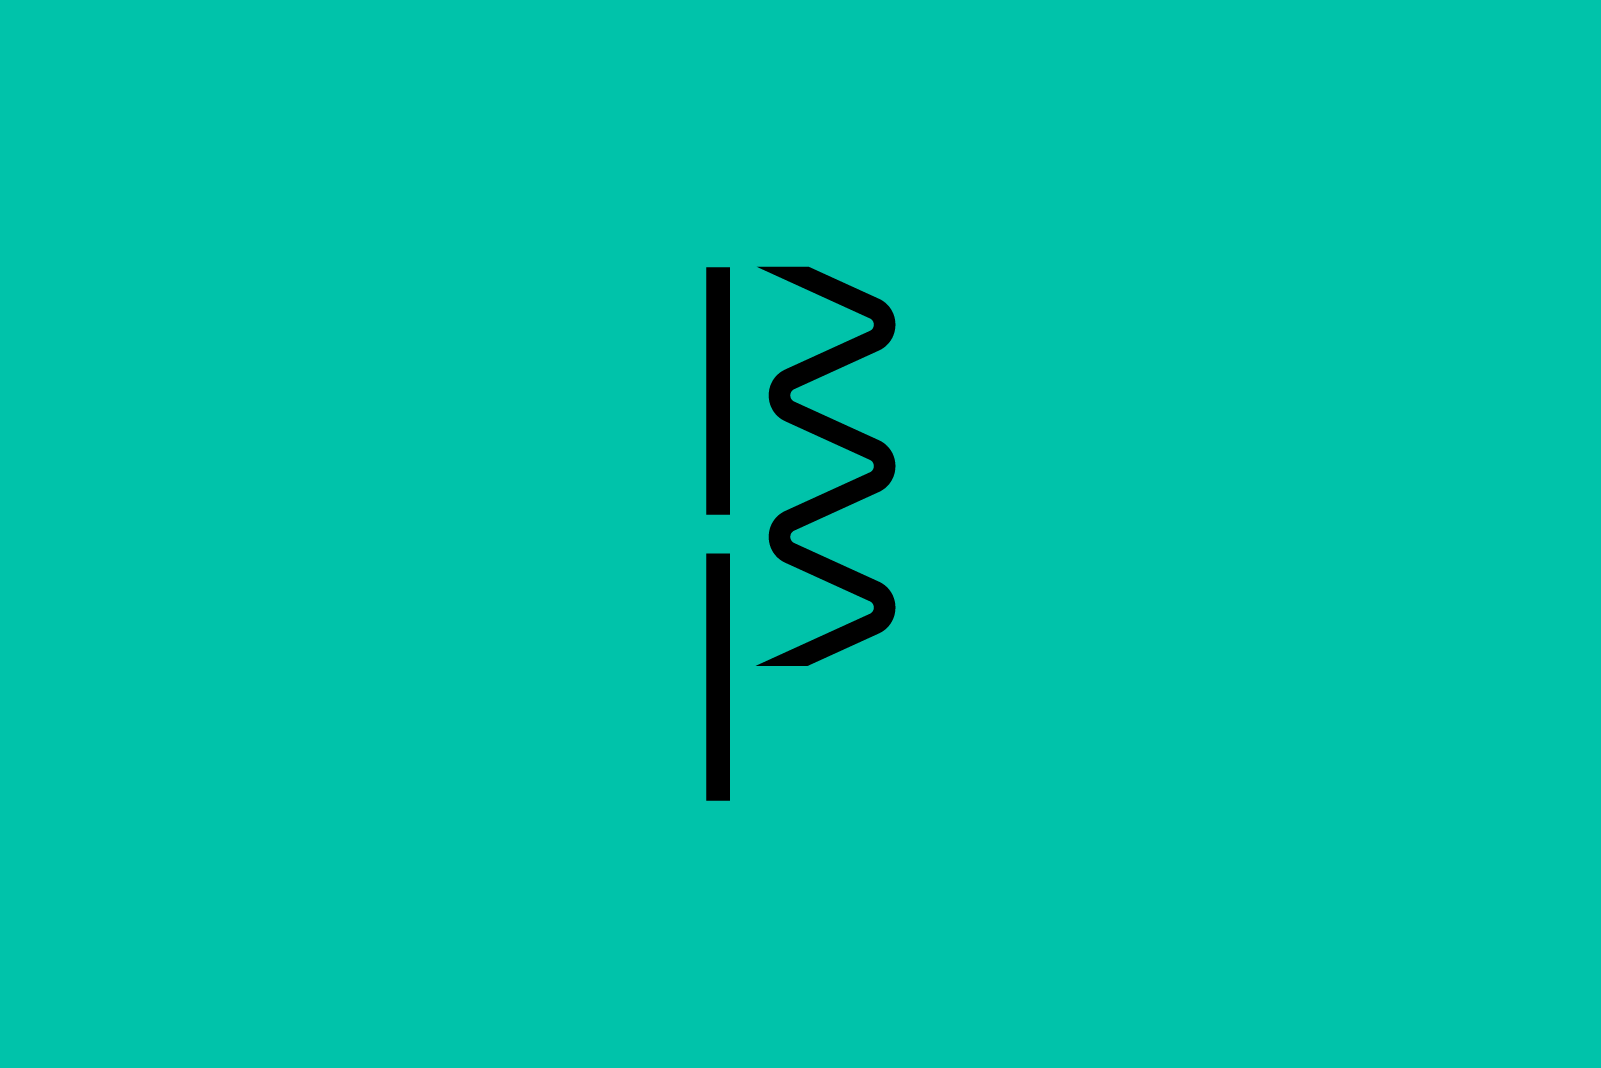 Big Pulse simplified logo, a B and a P connected by the Big Pulse signature line of movement